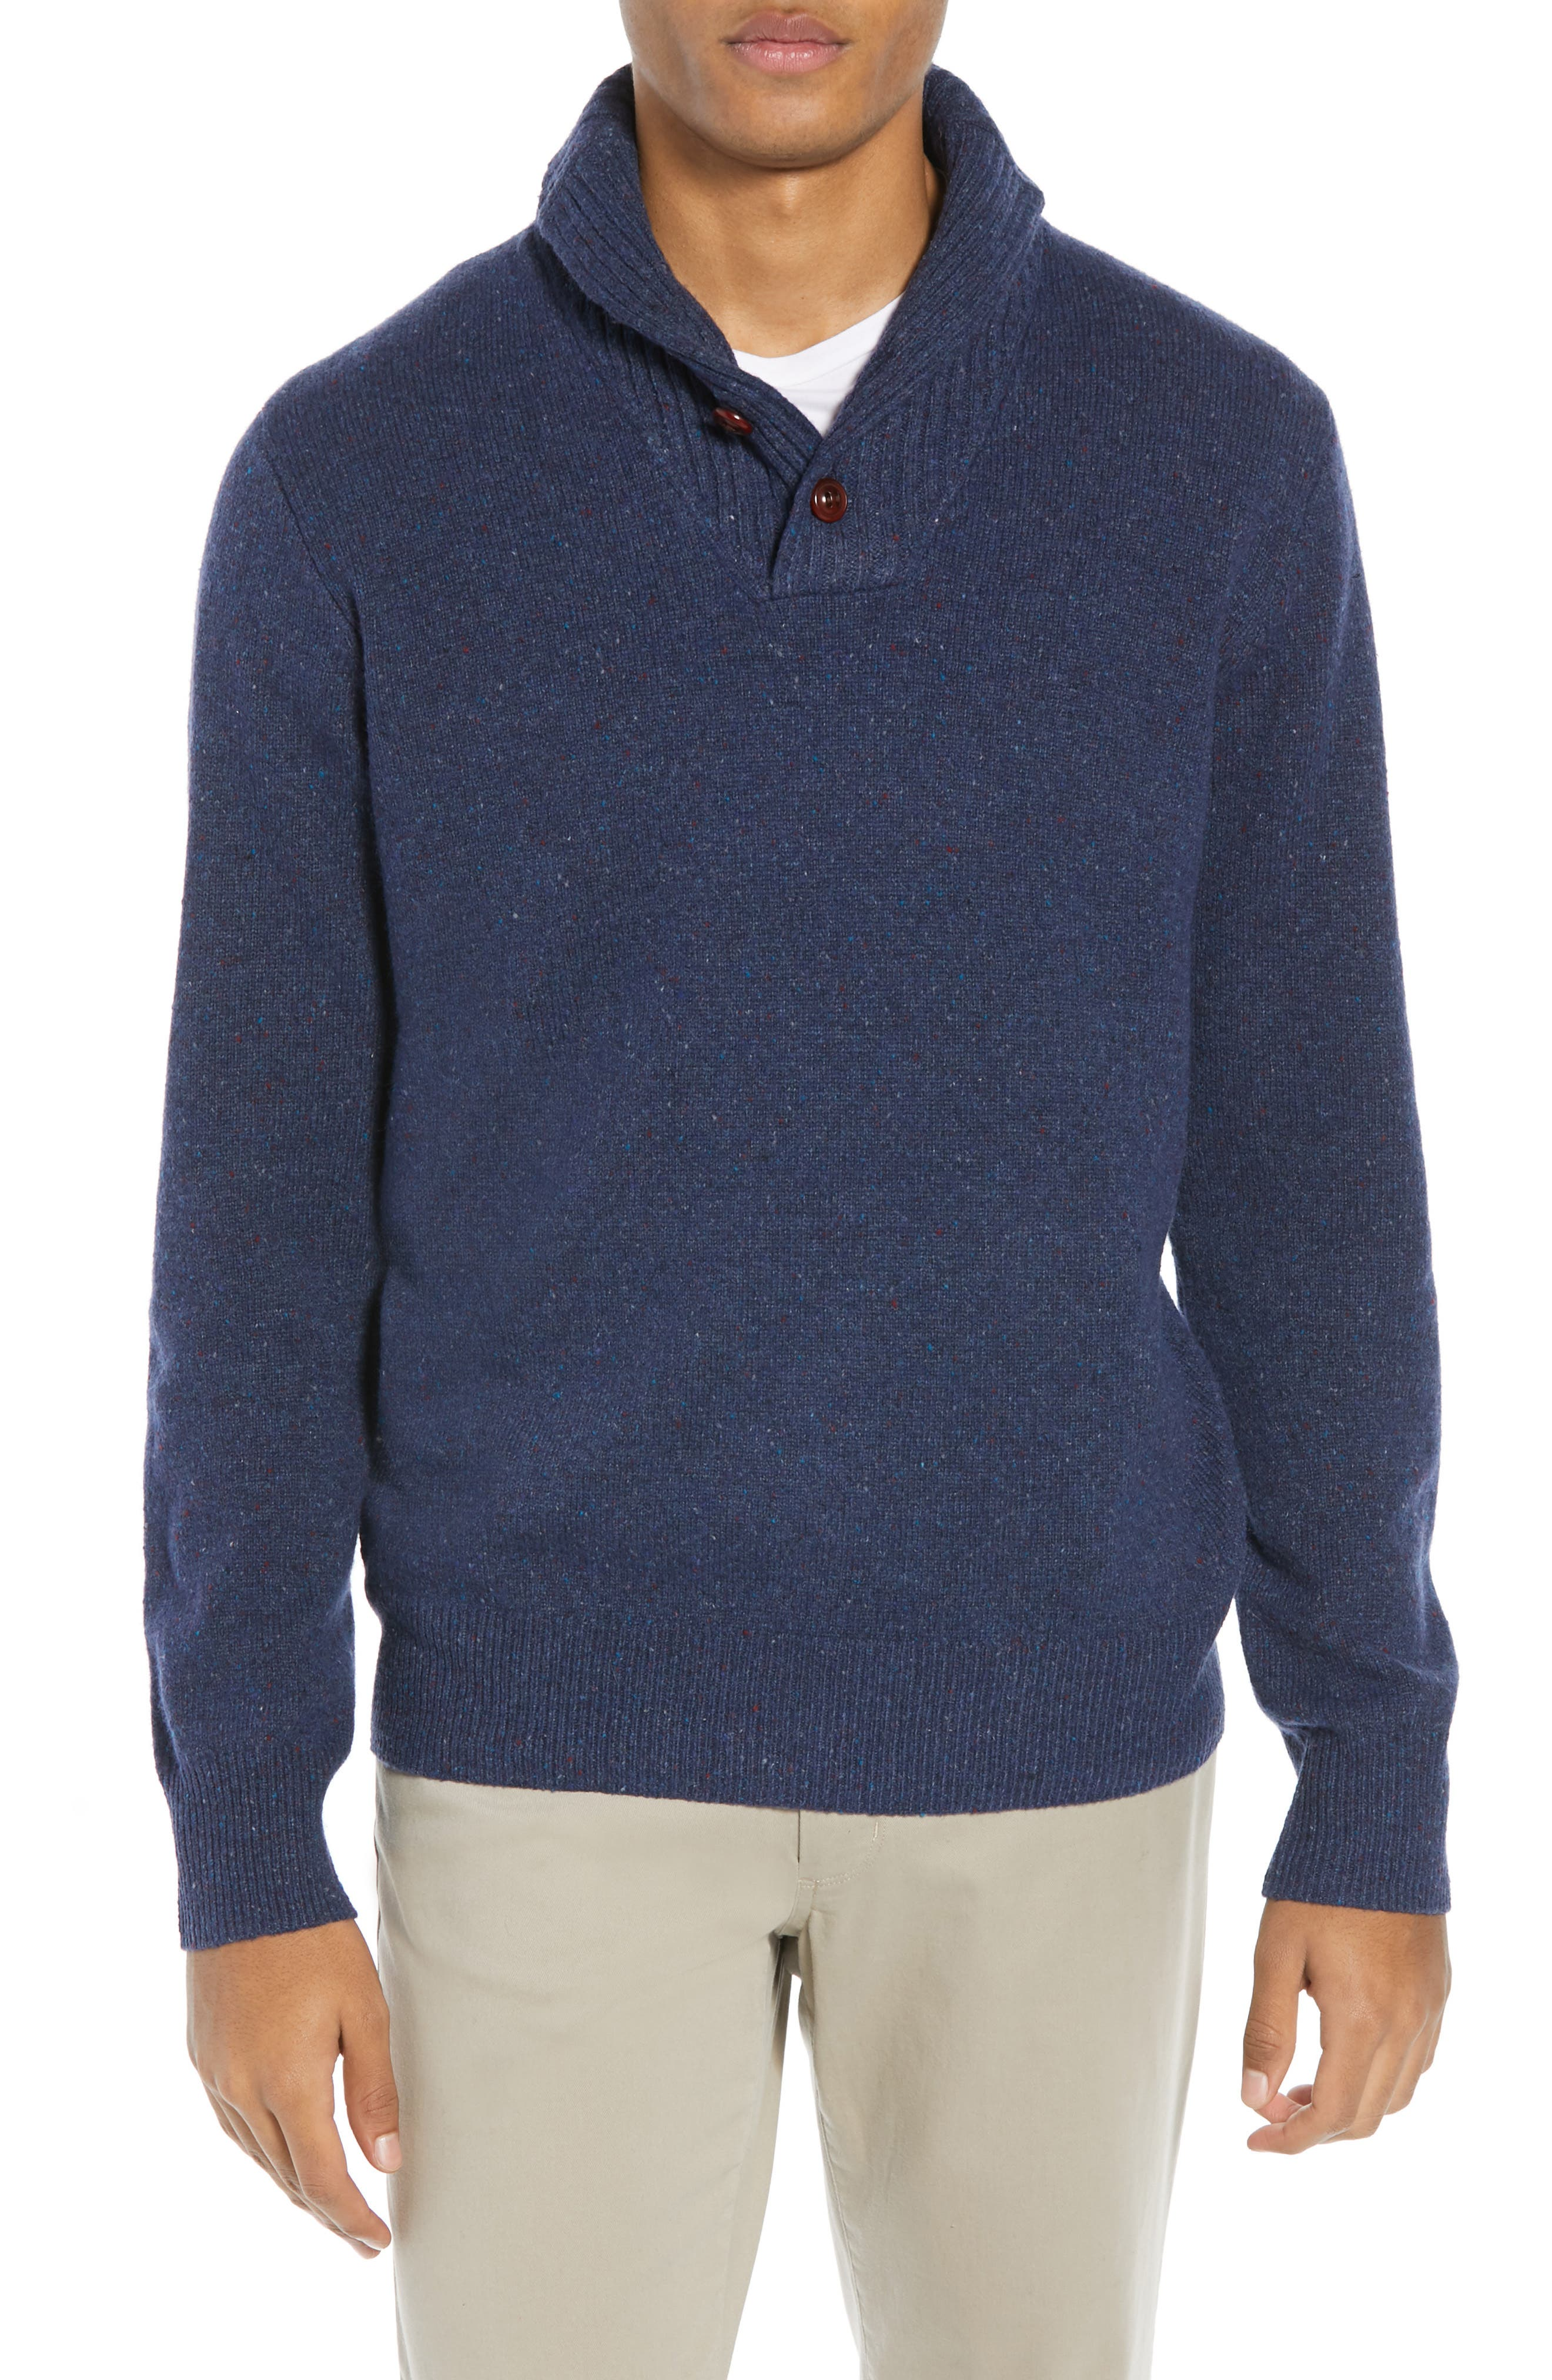 J.crew Rugged Merino Wool Blend Shawl Collar Pullover Sweater, Blue